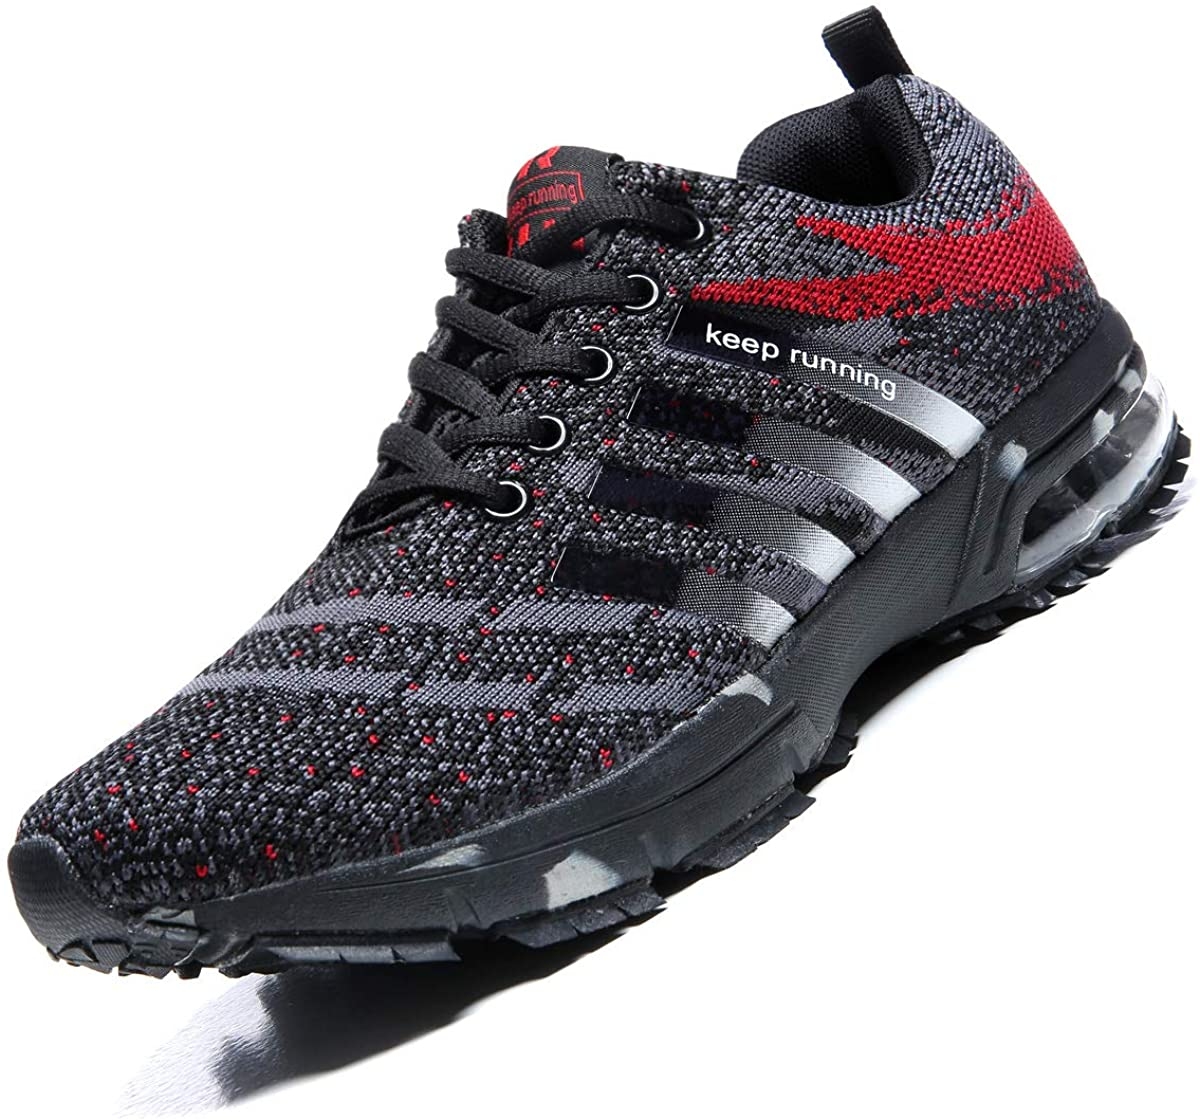 Dabbqis Hiking Shoes for Men Trail Running Sneakers Lightweight Athletic Breathable Water Shoes Black/Red